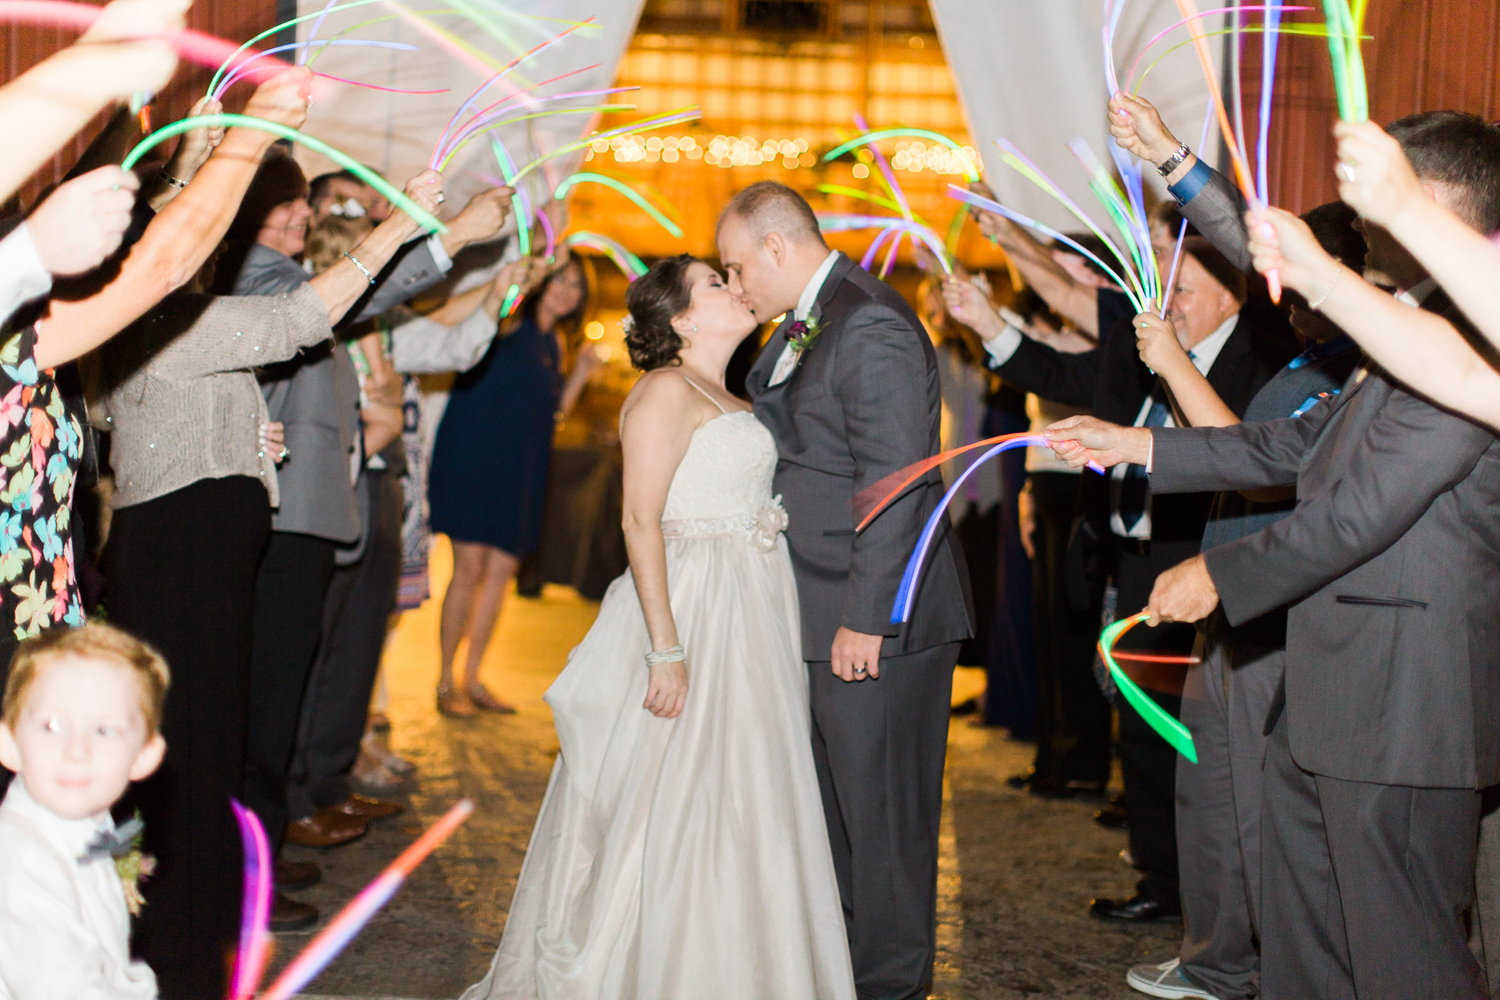 Glowsticks - A fun alternate exit! And they're fun for the dance floor!!